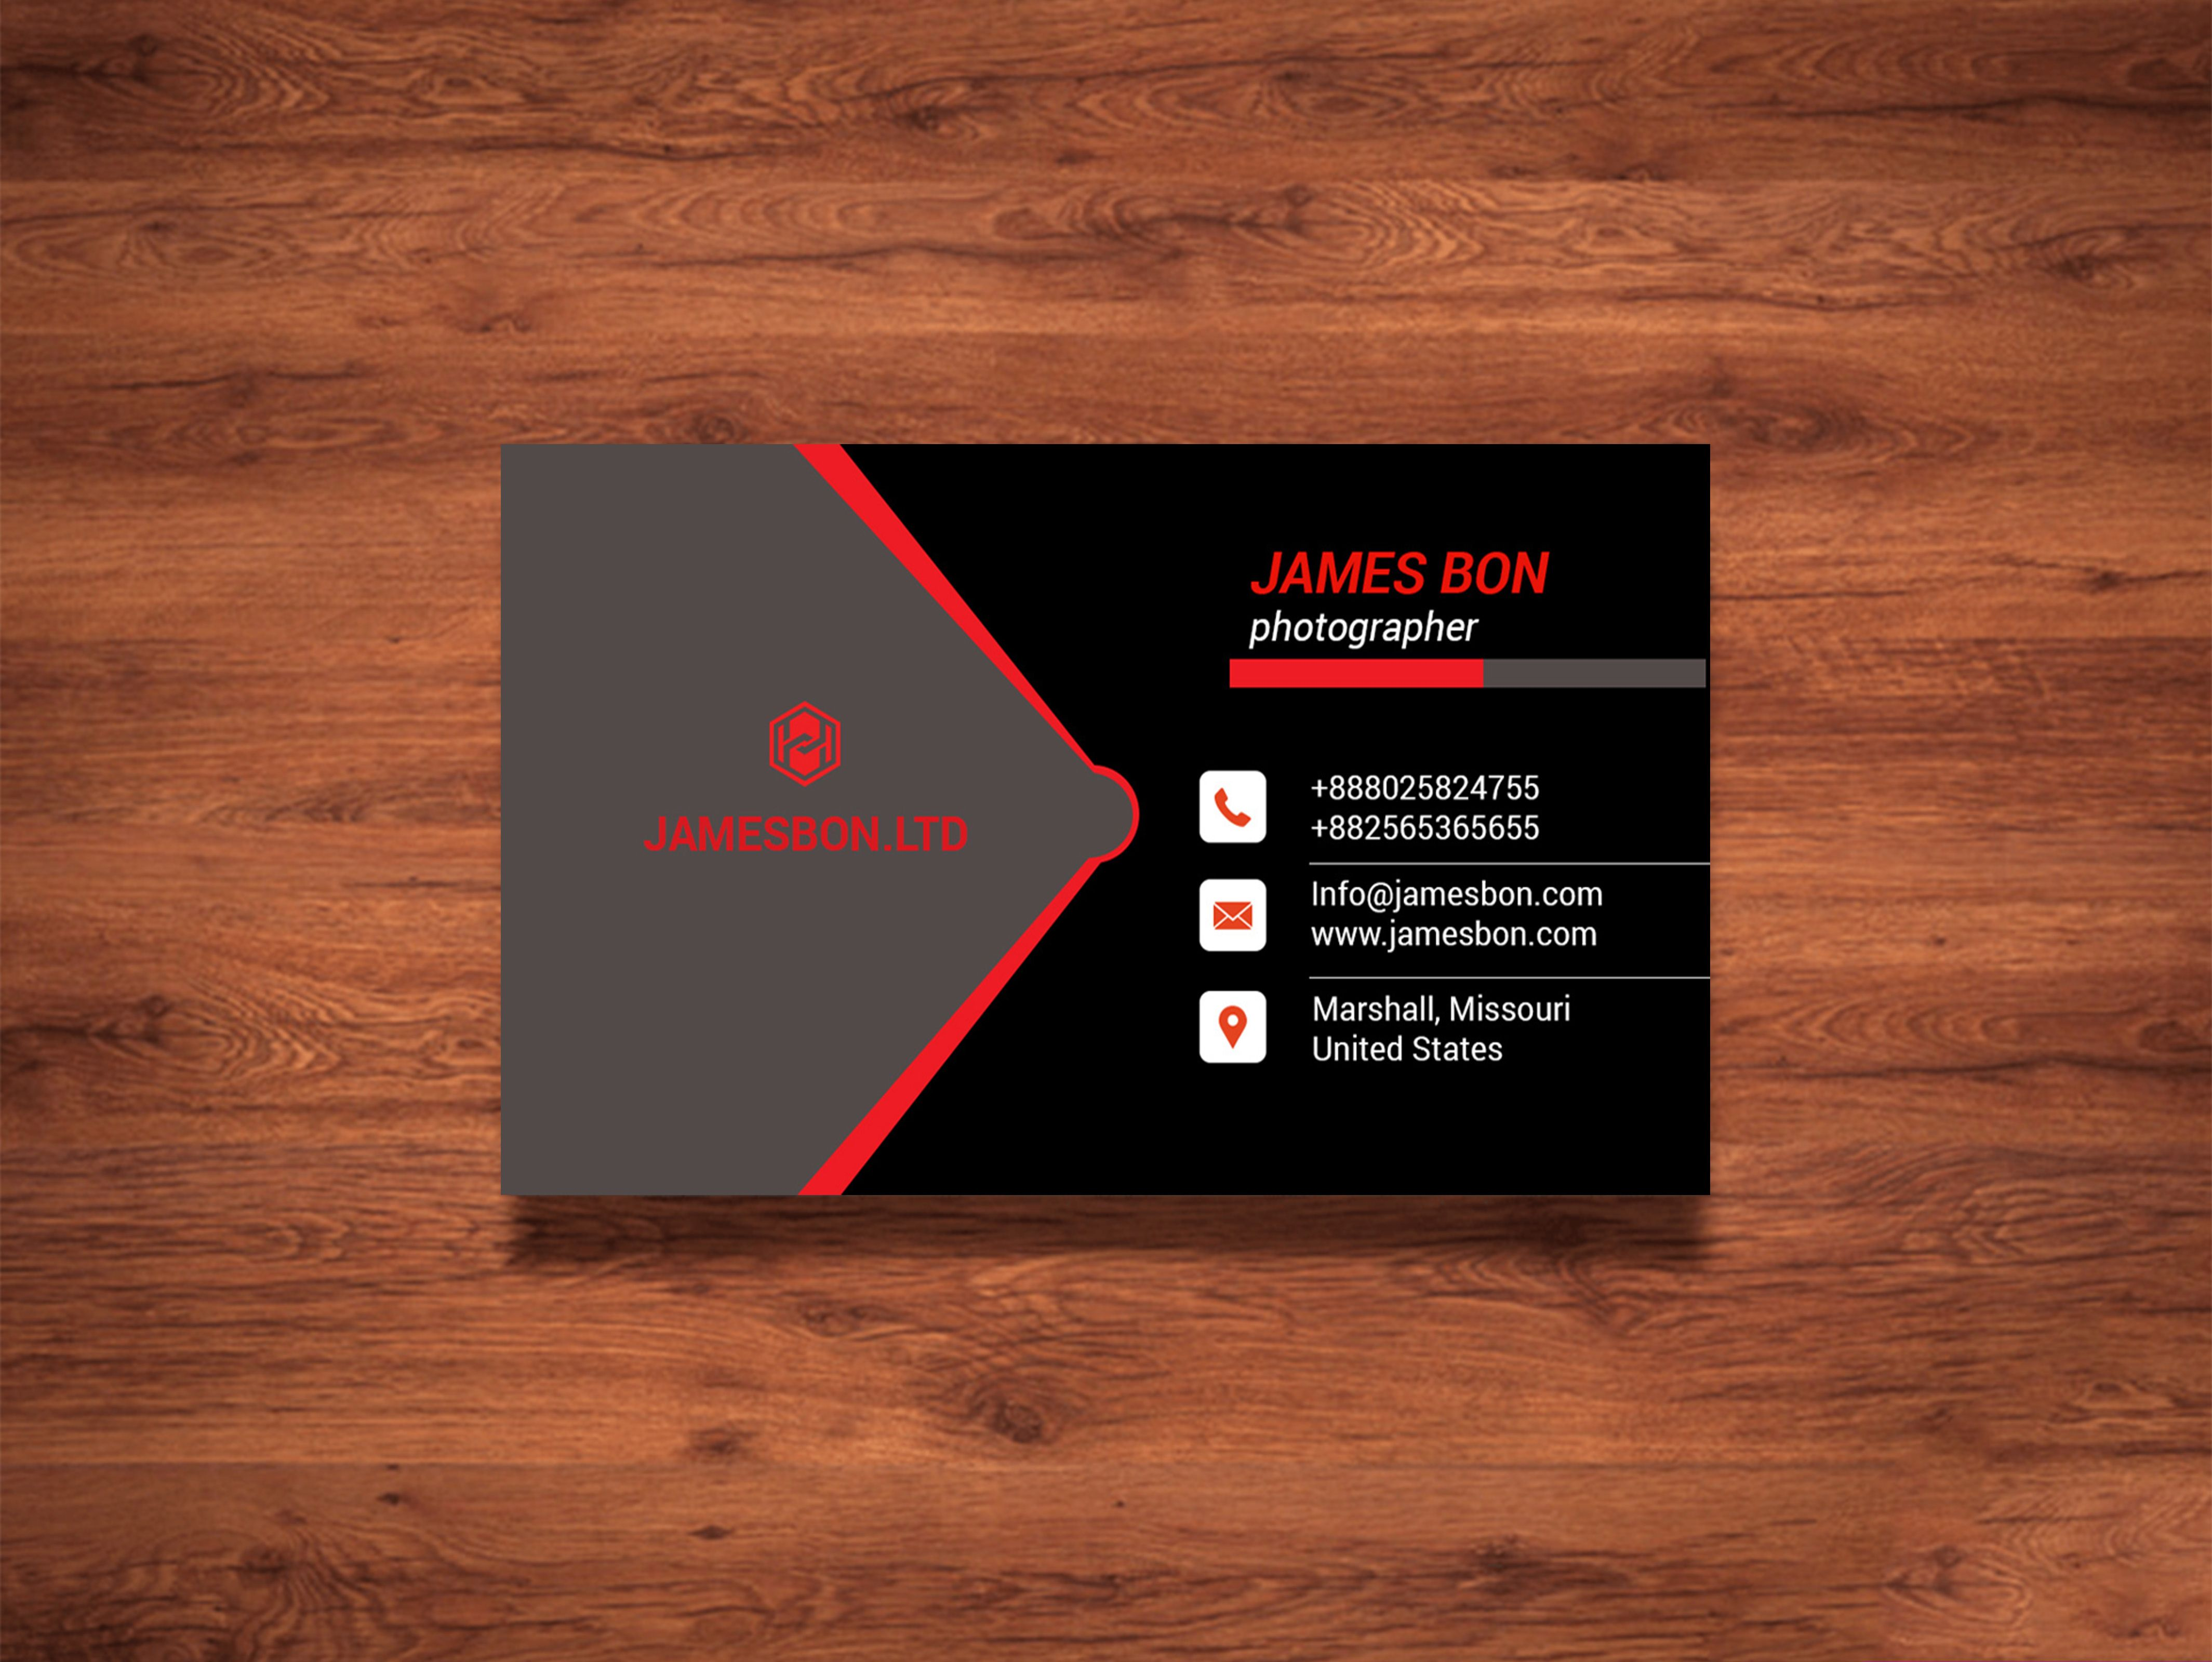 Unique business cards design within 2 hours unique business cards manjil280 i will unique business cards design within 2 hours for 5 on fiverr reheart Images